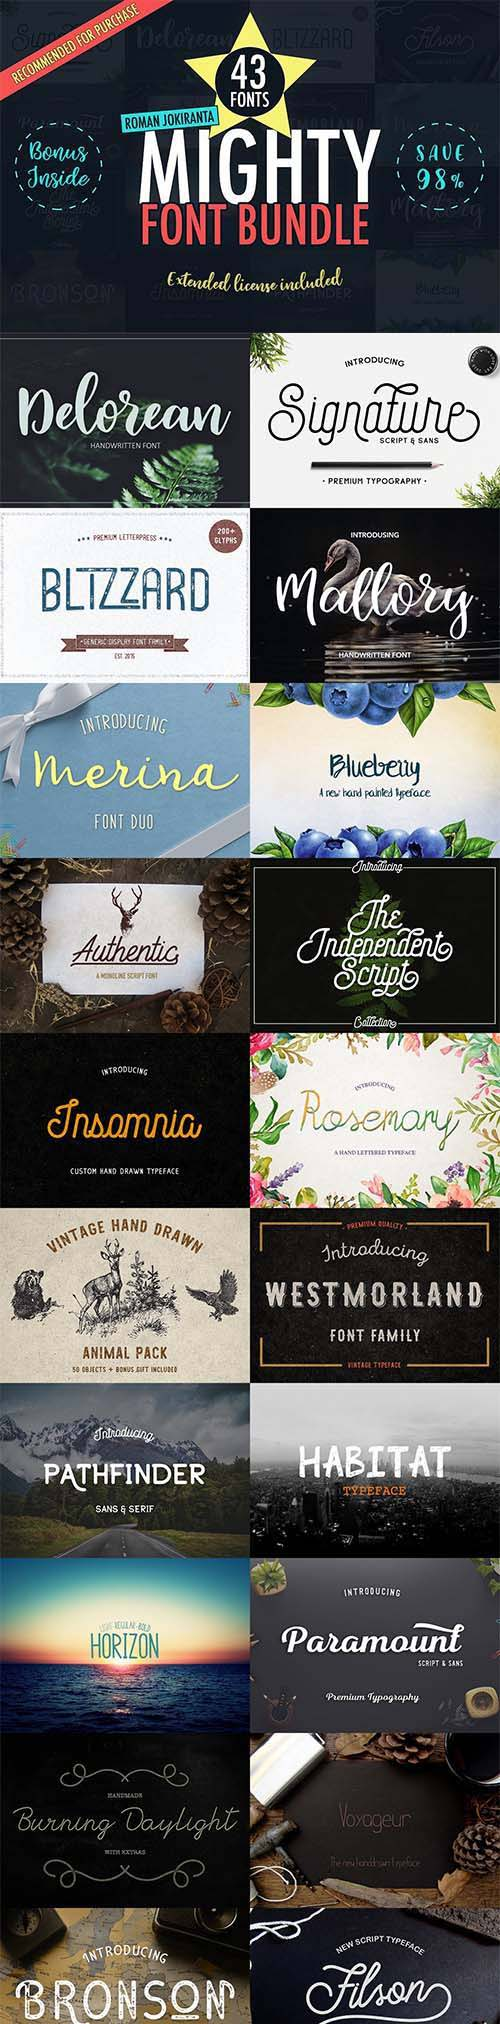 43 Mighty Font Bundle 1176484